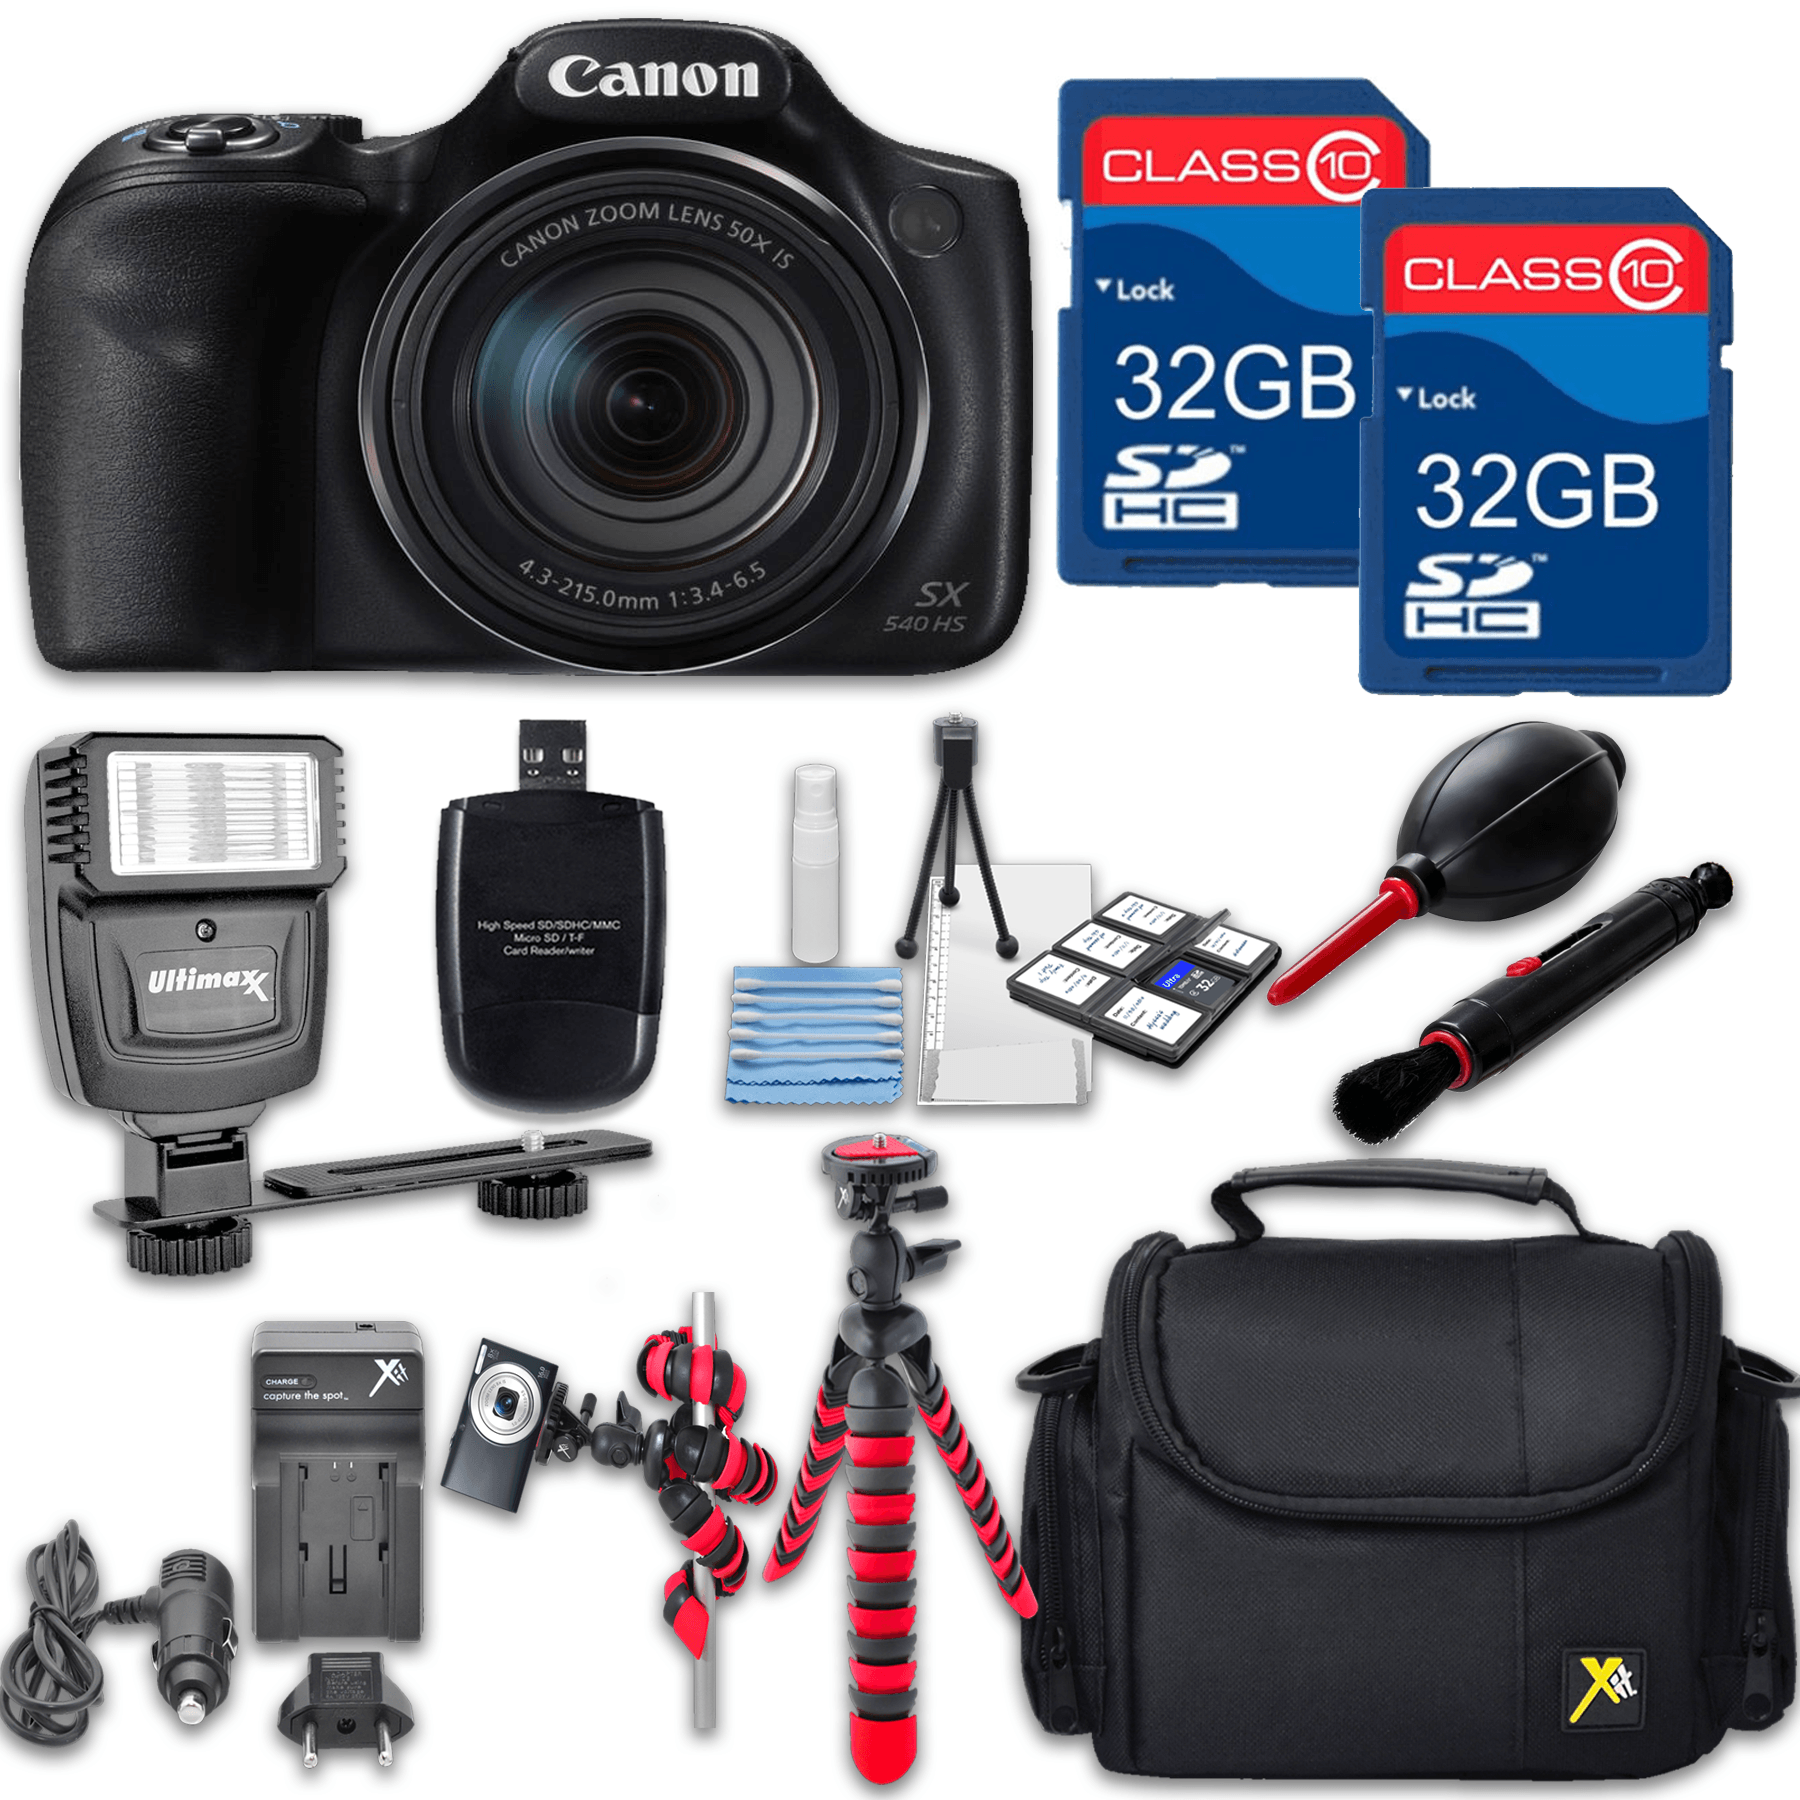 Canon Powershot SX540 (Black) HS Point and Shoot Digital Camera, W/ Case + 64GB Memory + Flash + Tripod + Case + Cleaning Kit + More